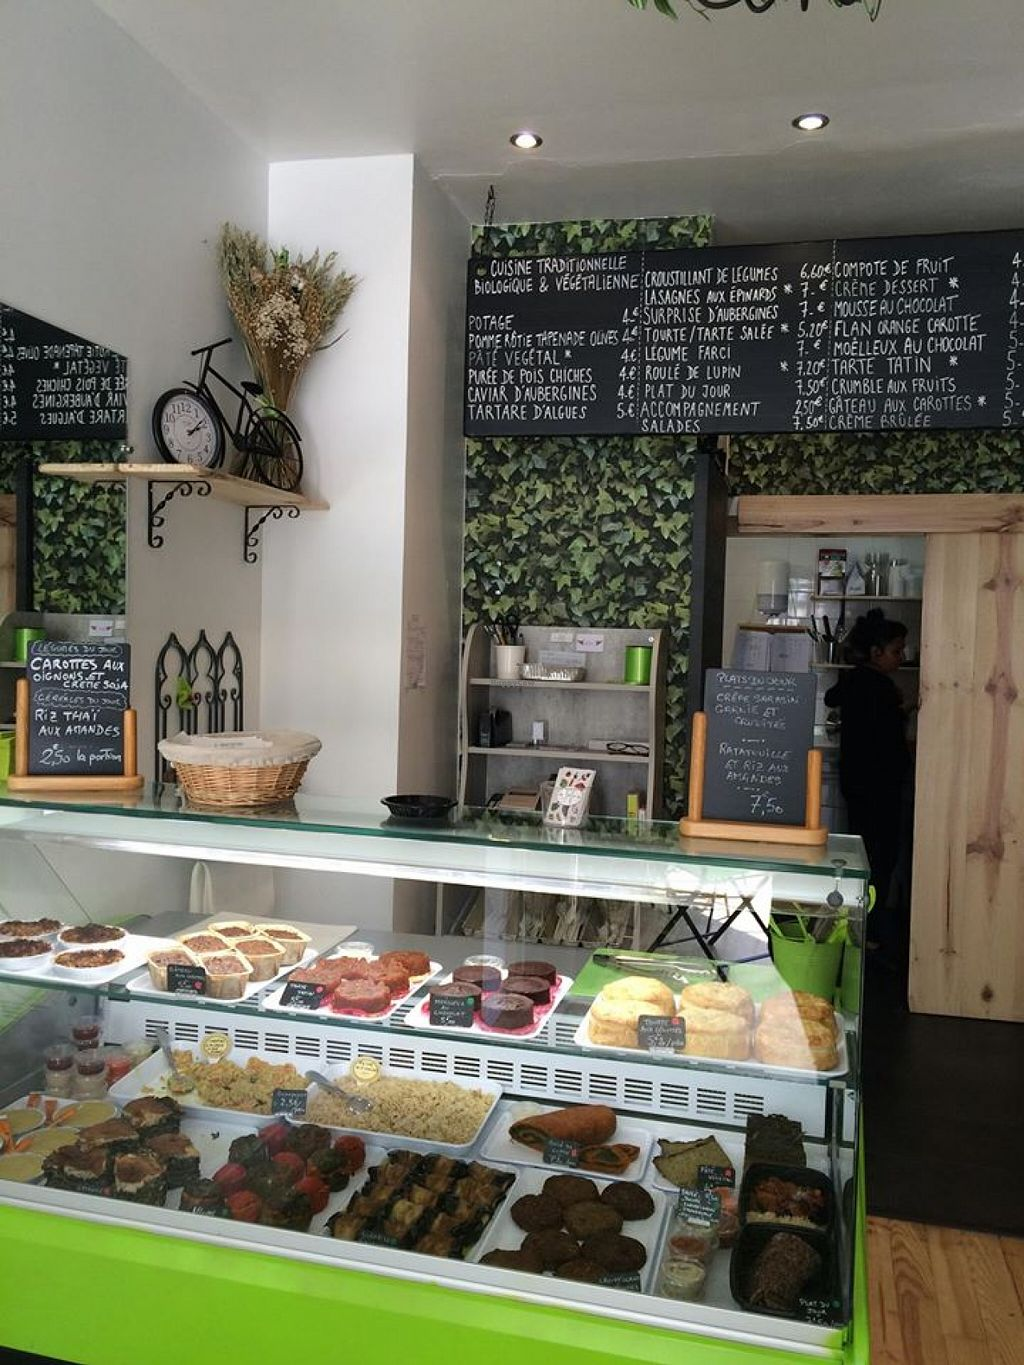 "Photo of CLOSED: Le Potager du Marais - Take Away  by <a href=""/members/profile/LauraMay"">LauraMay</a> <br/>Inside is pretty! <br/> May 26, 2016  - <a href='/contact/abuse/image/73369/150884'>Report</a>"